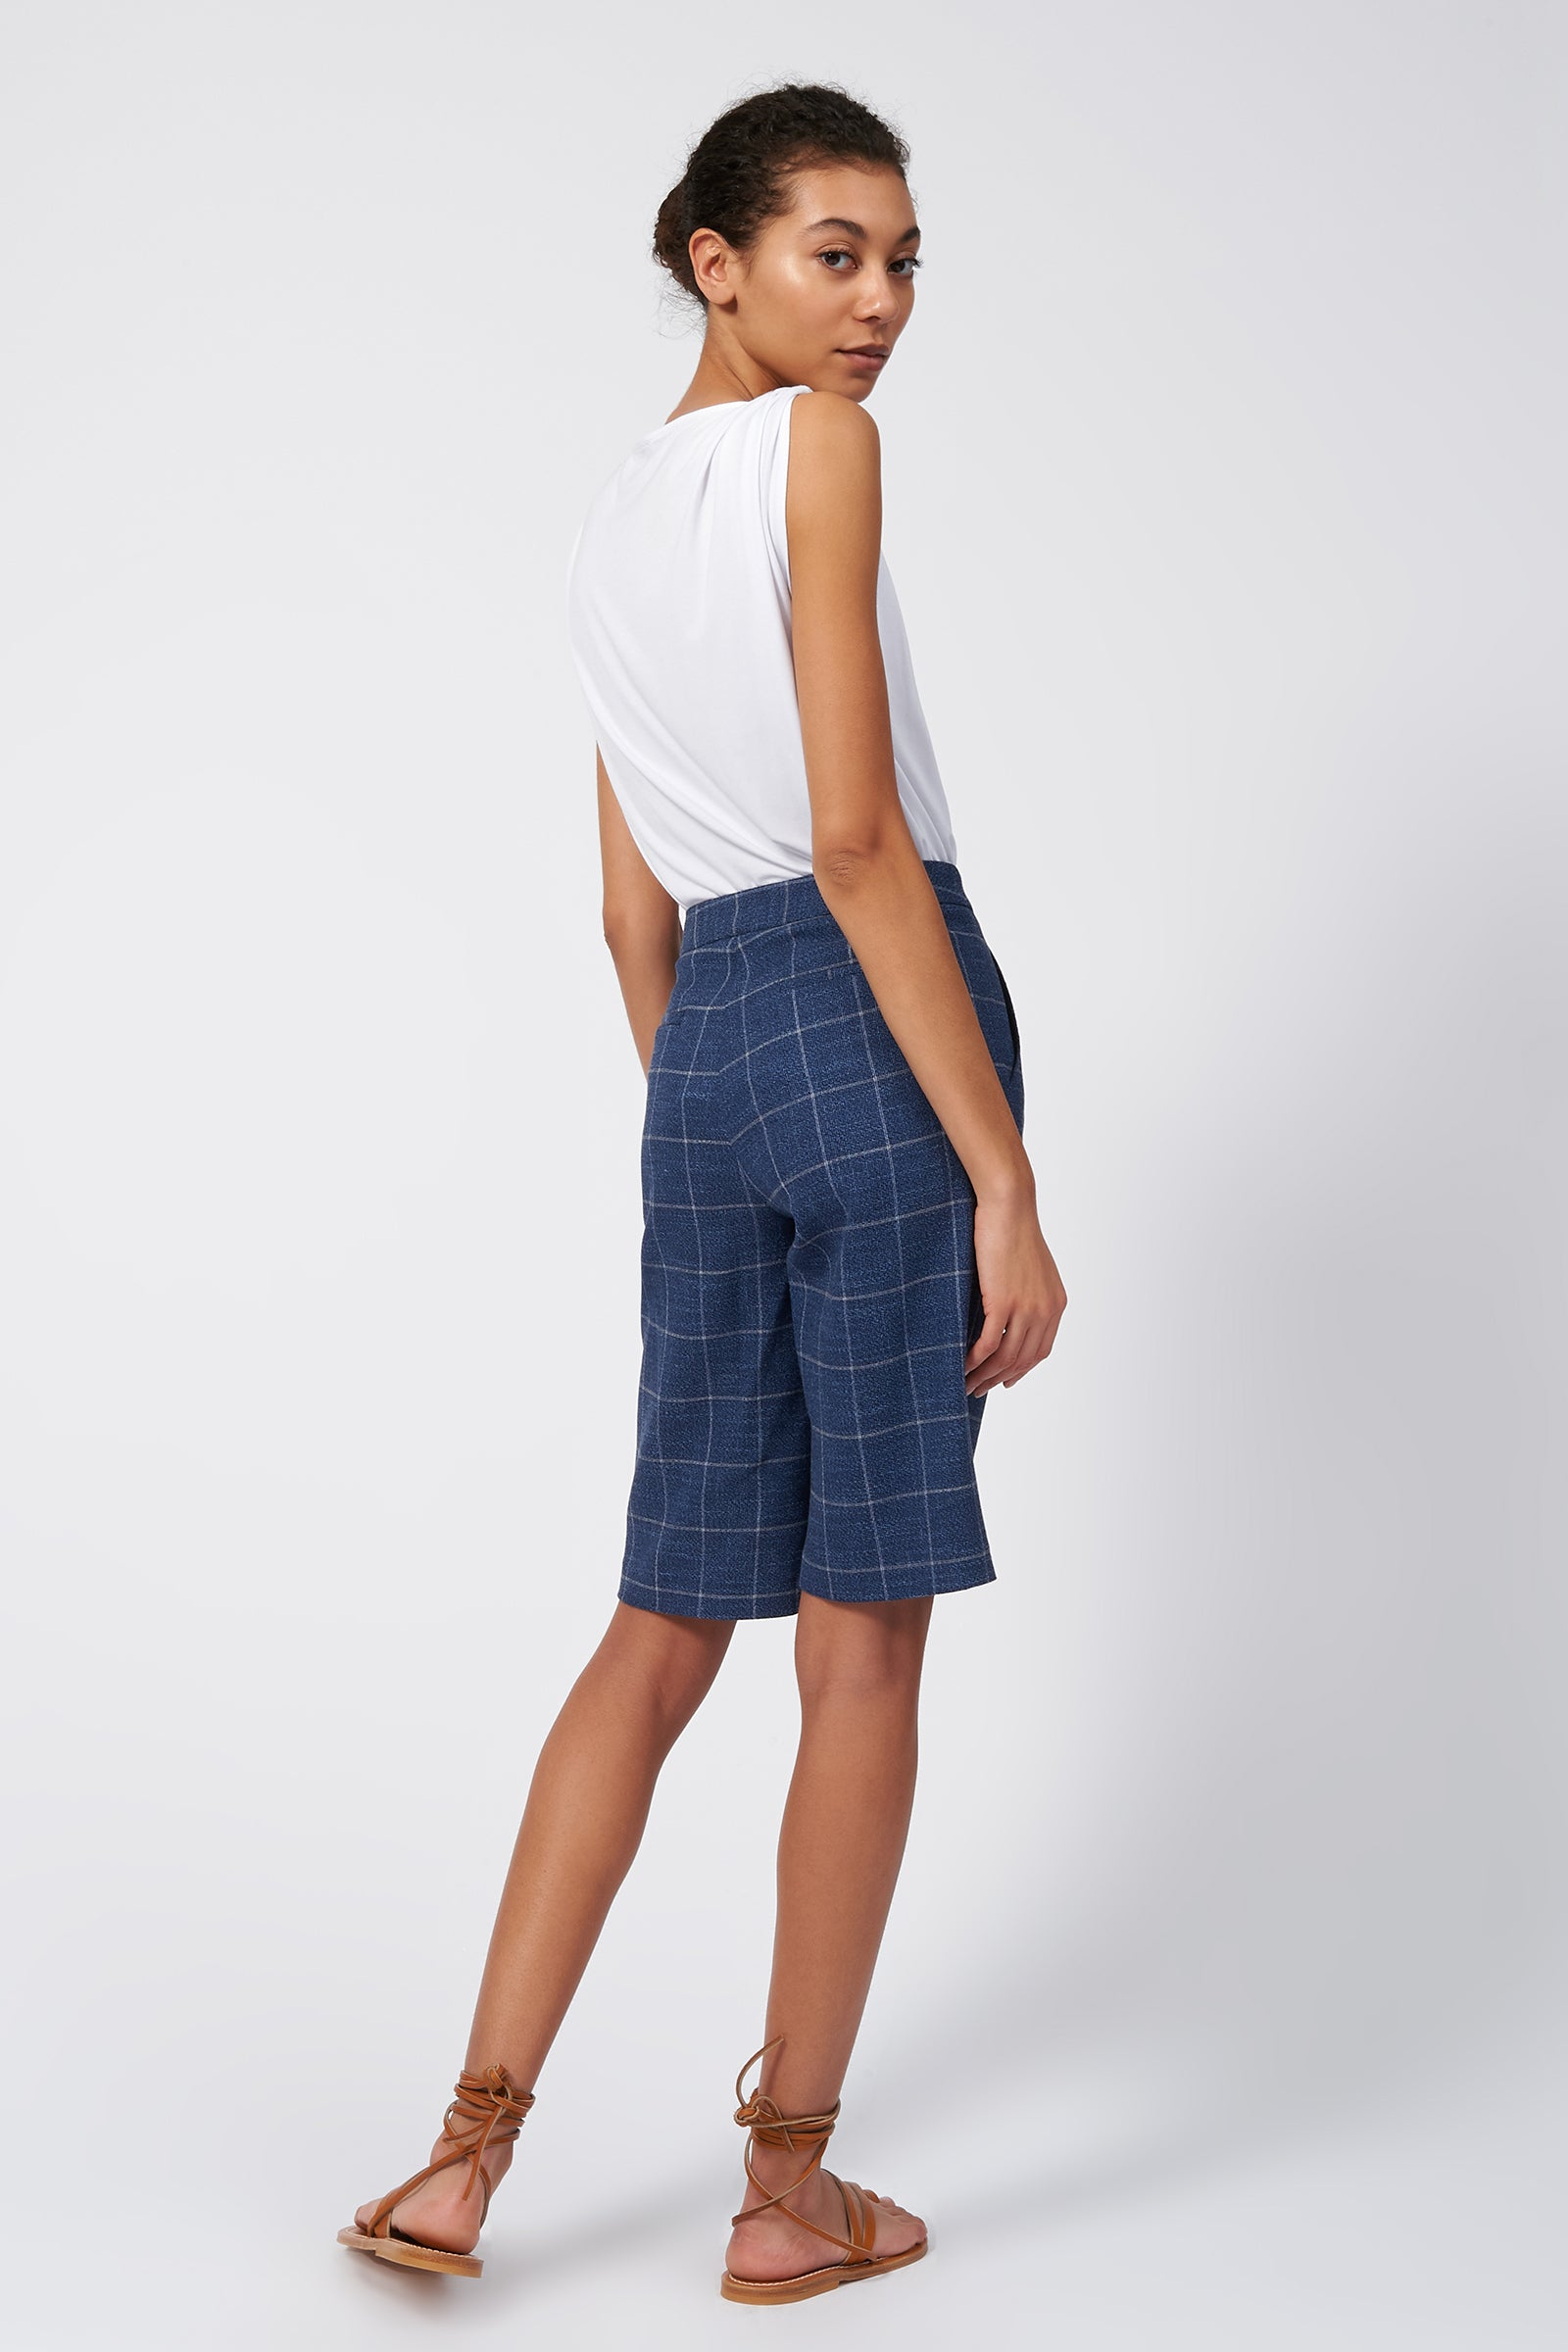 Kal Rieman Flat Front Bermuda Short in Windowpane on Model Full Front View